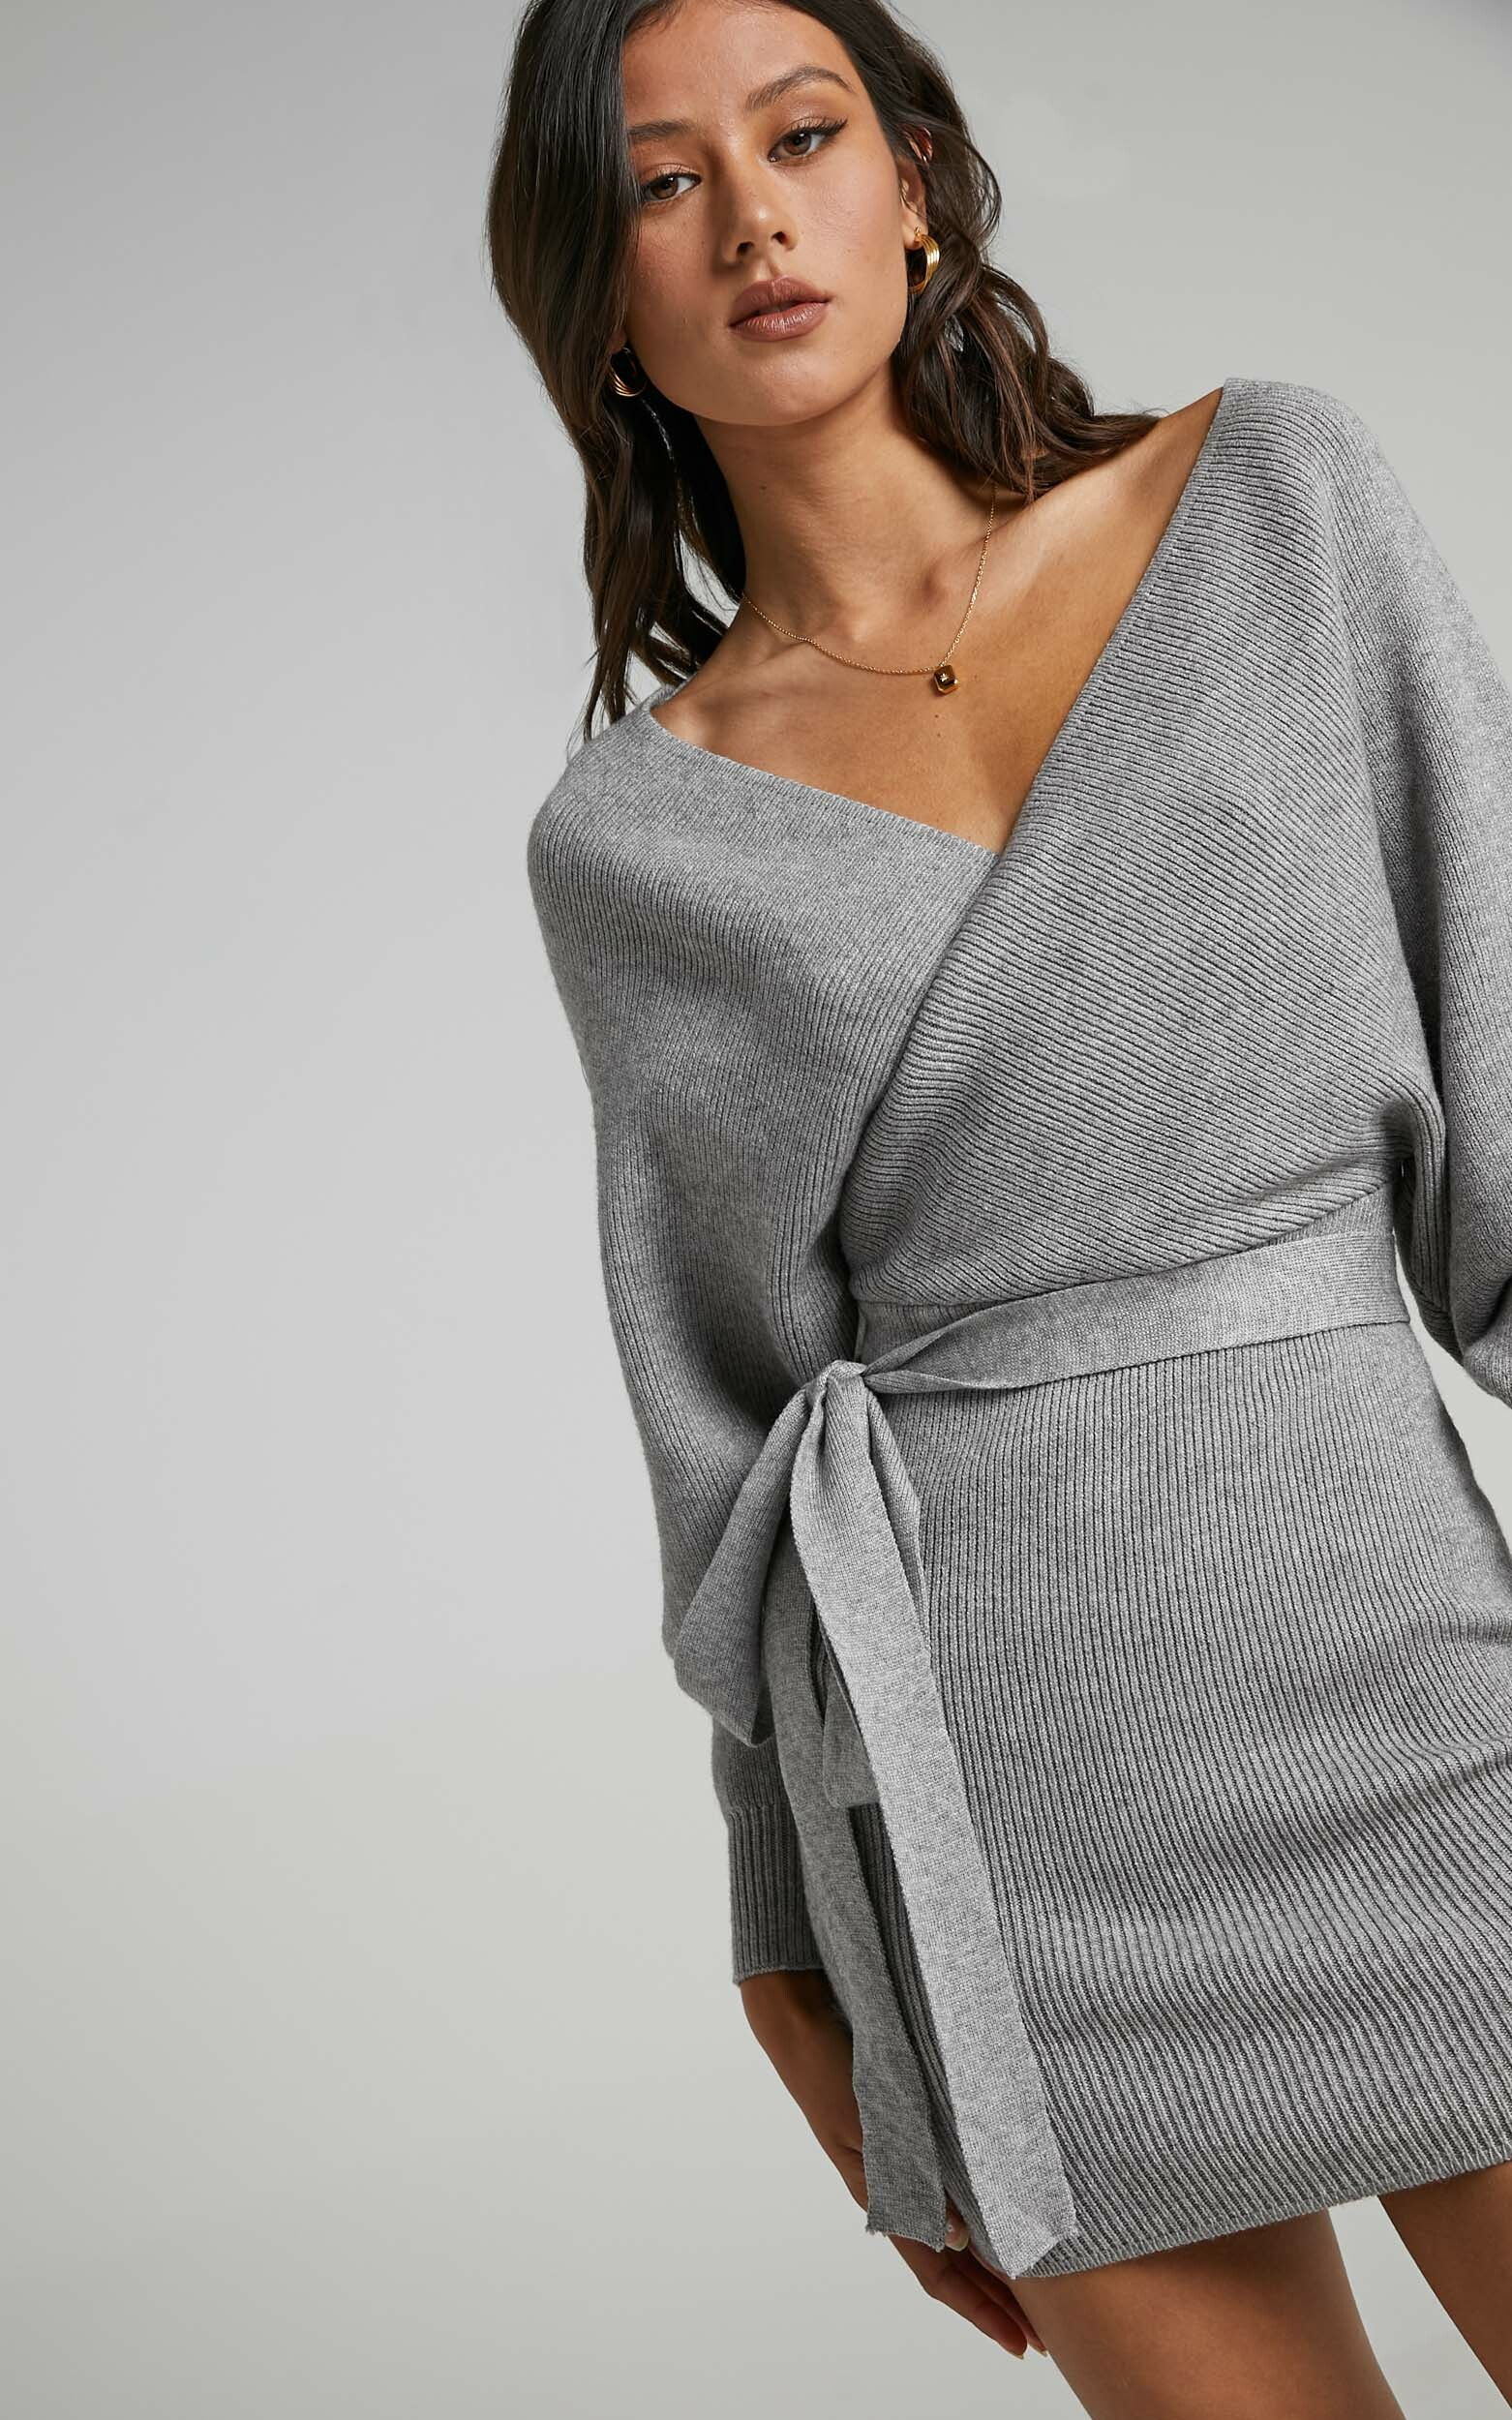 Dont Fall Down Knit Dress in Grey - 06, GRY2, hi-res image number null